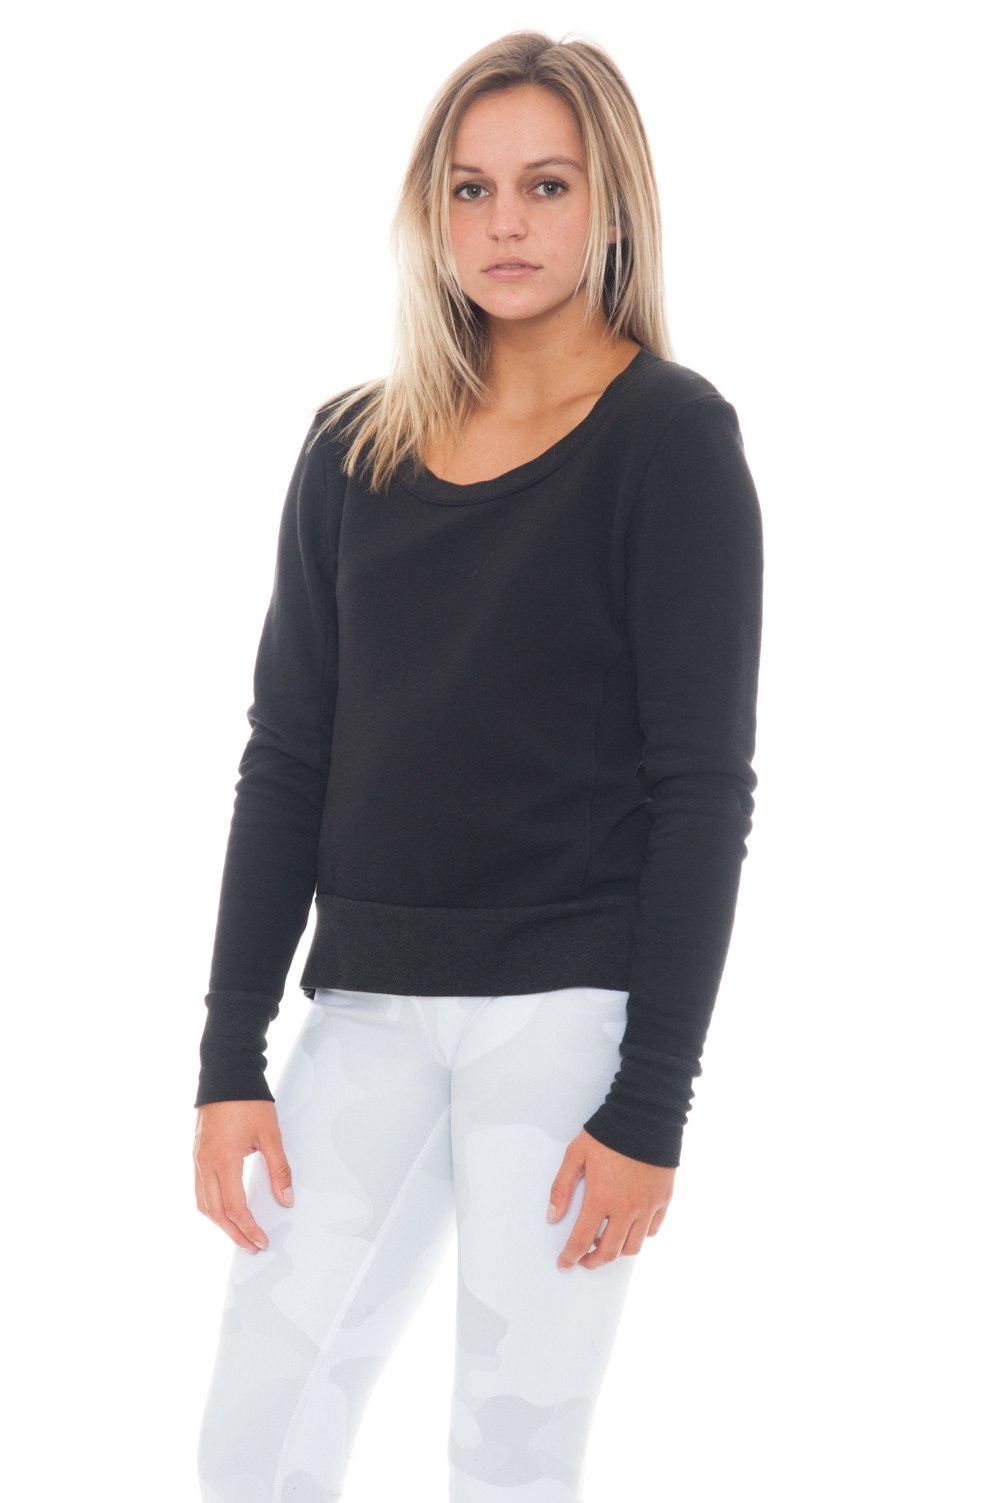 Sweatshirt - SIMONE Open Back by Good hYOUman - 1